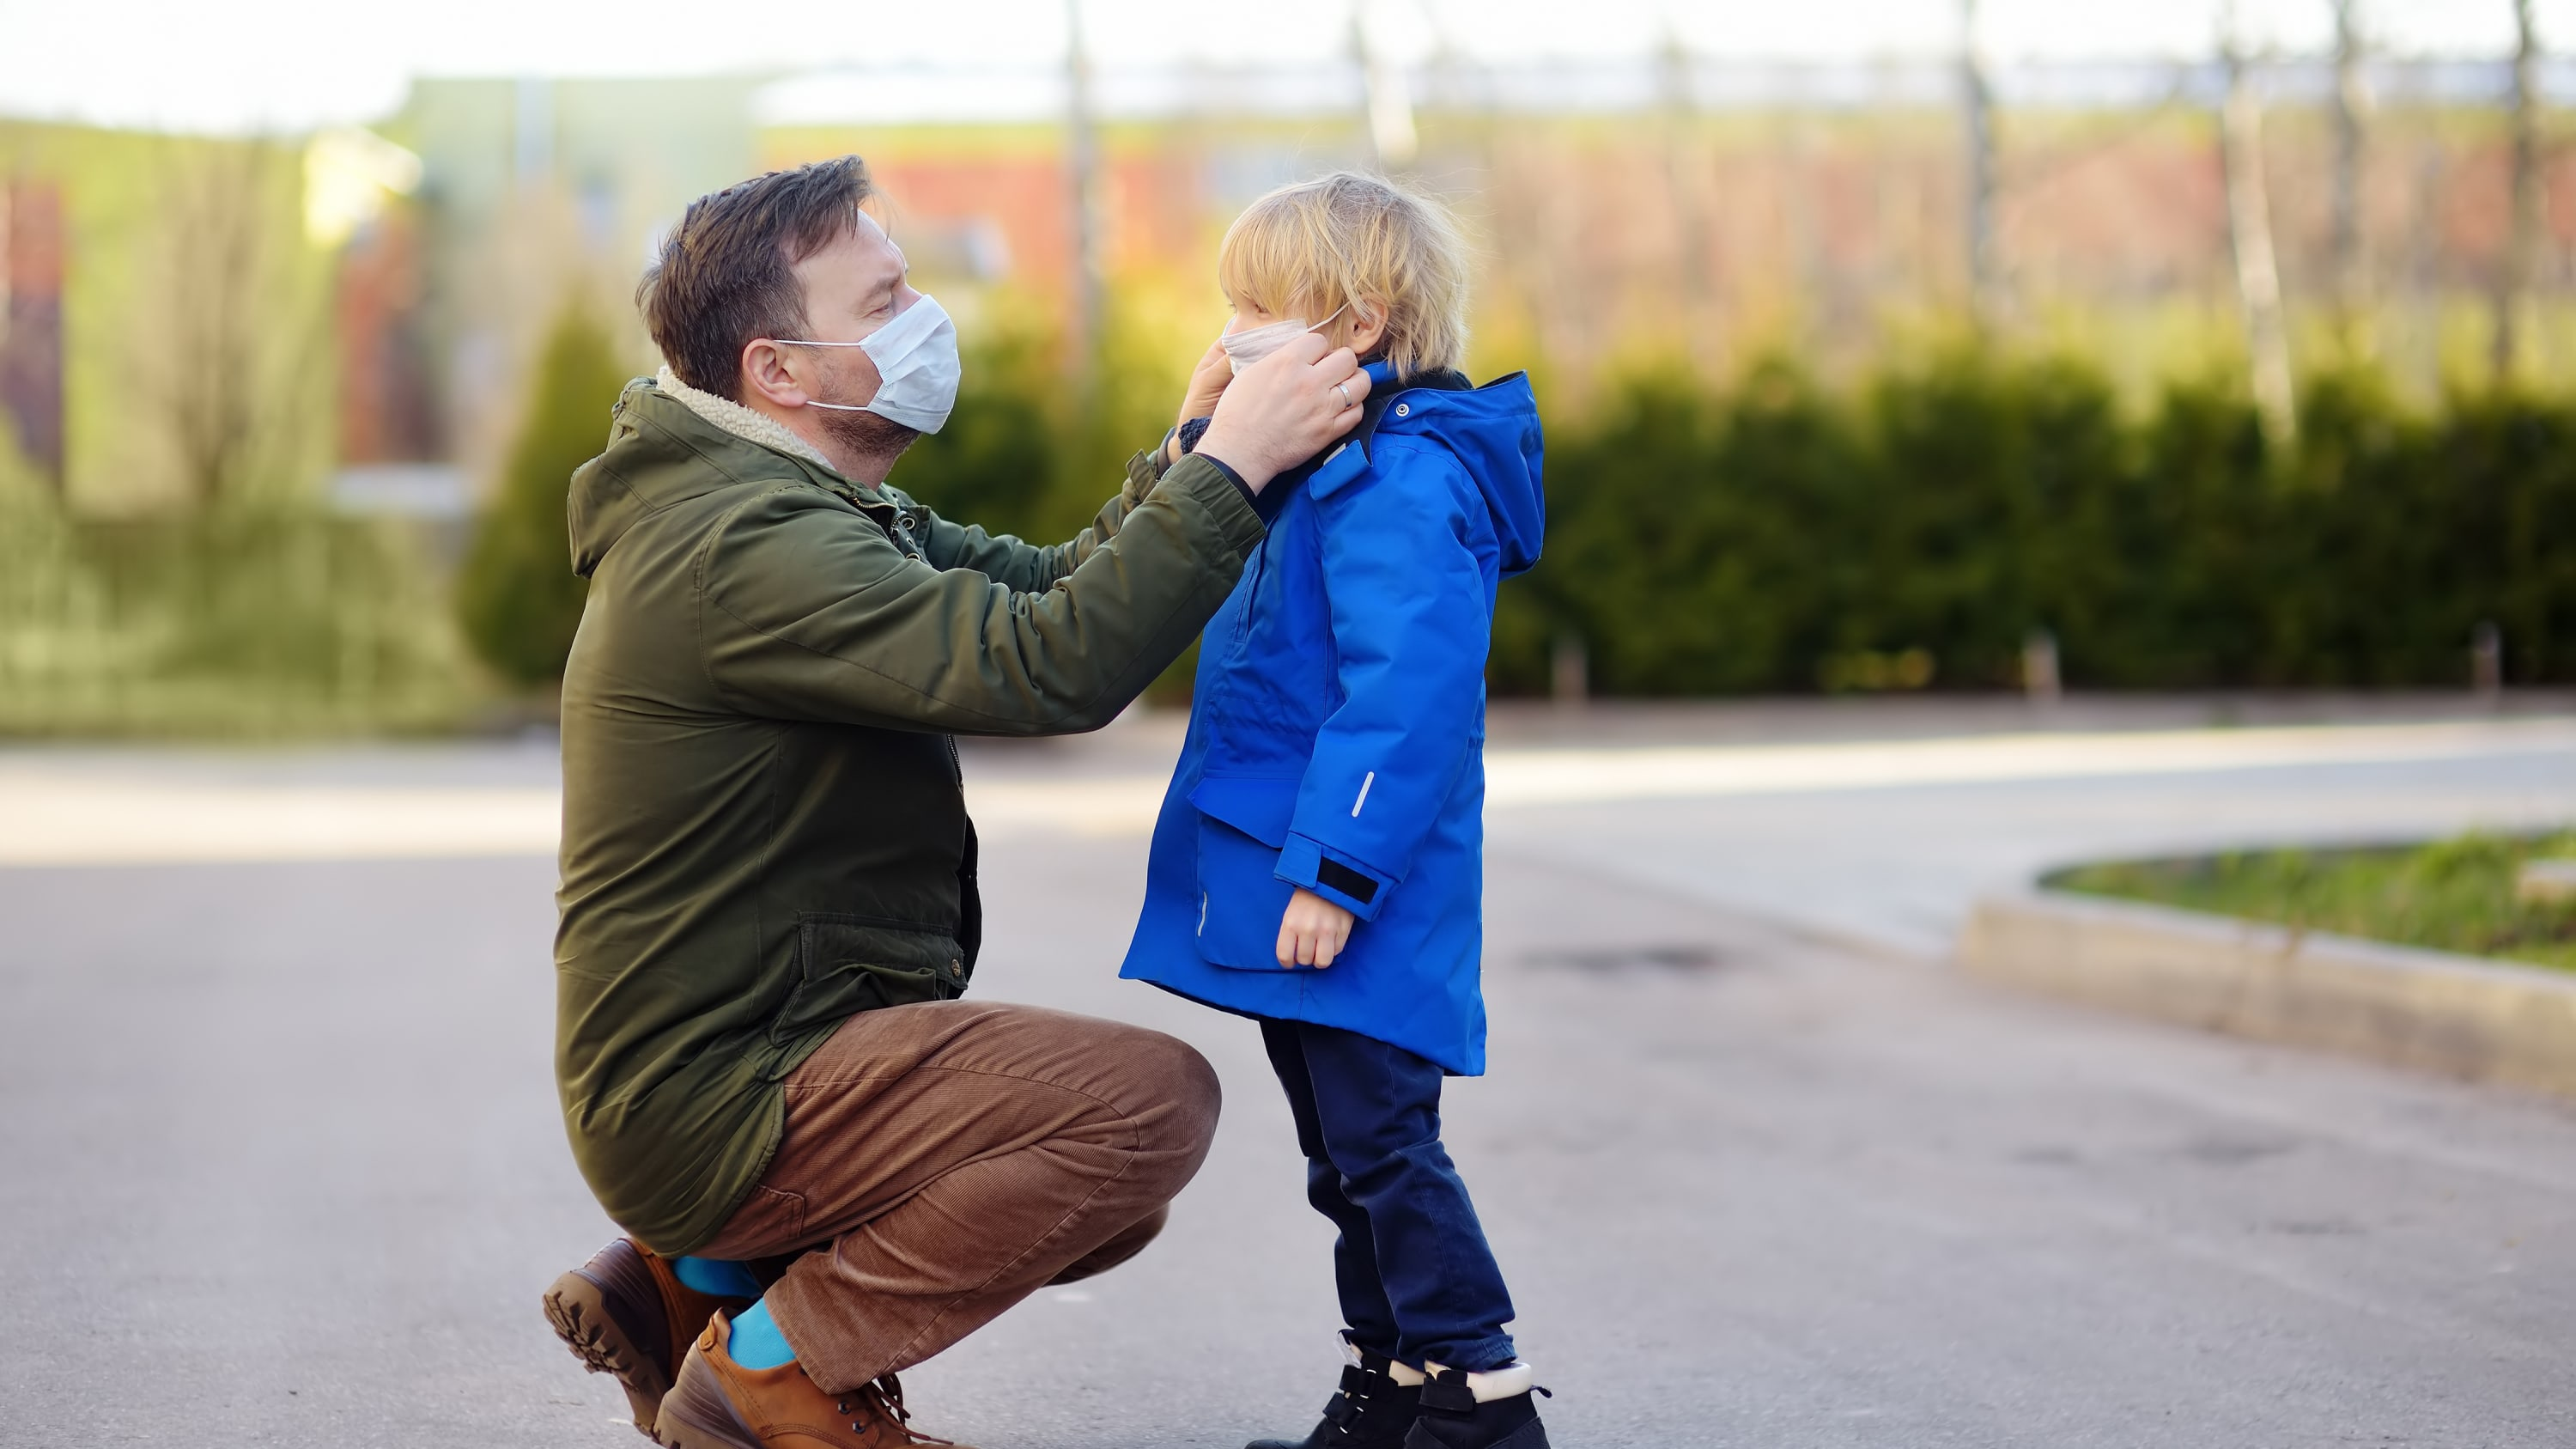 father putting face mask on son, possibly to protect against MIS-C, the syndrome in children associated with COVID-19